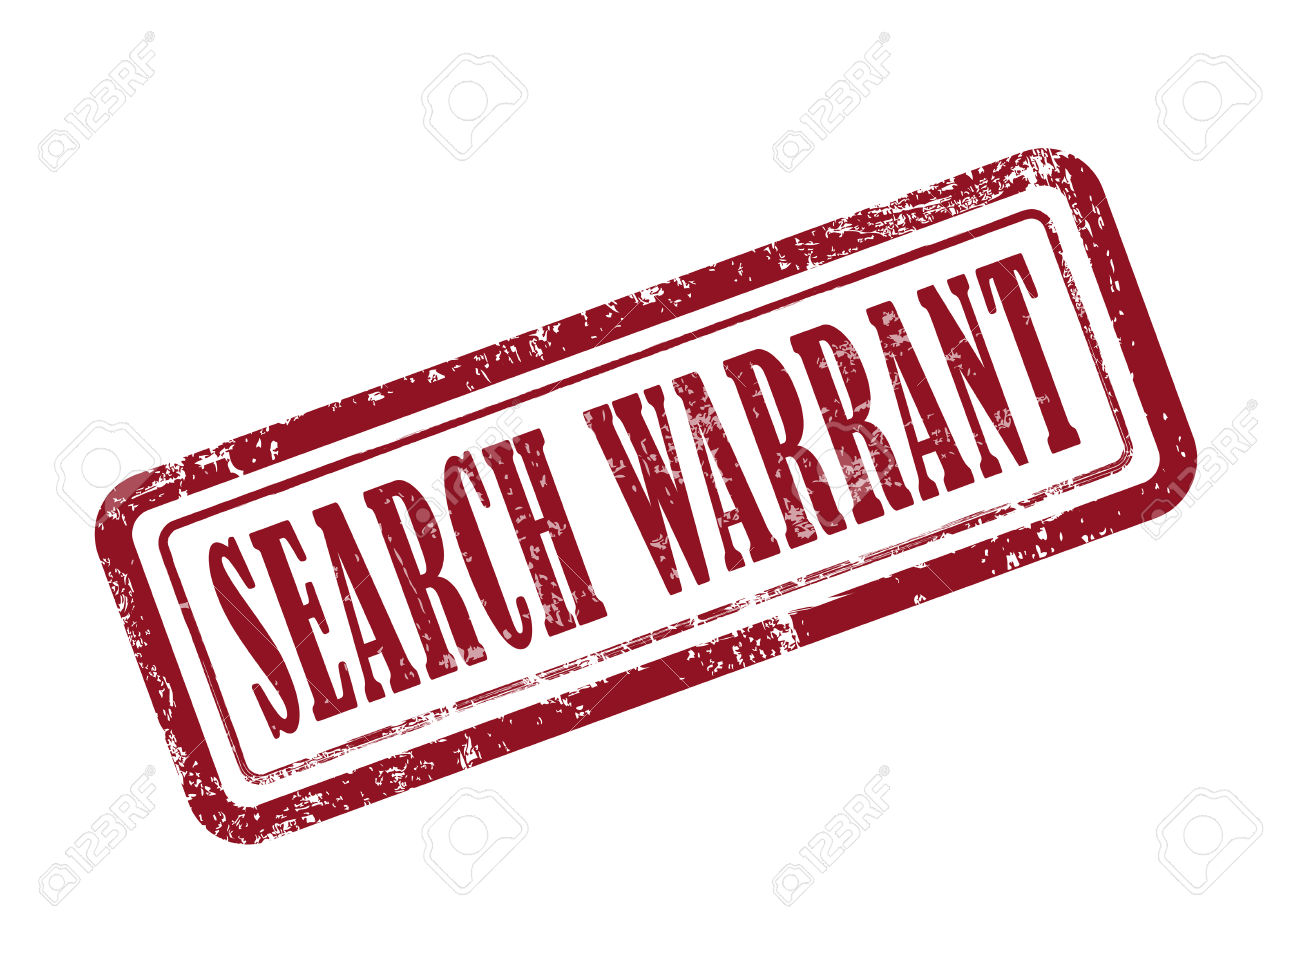 House search warrant clipart svg transparent library Search Warrant Clip Art – Clipart Free Download svg transparent library